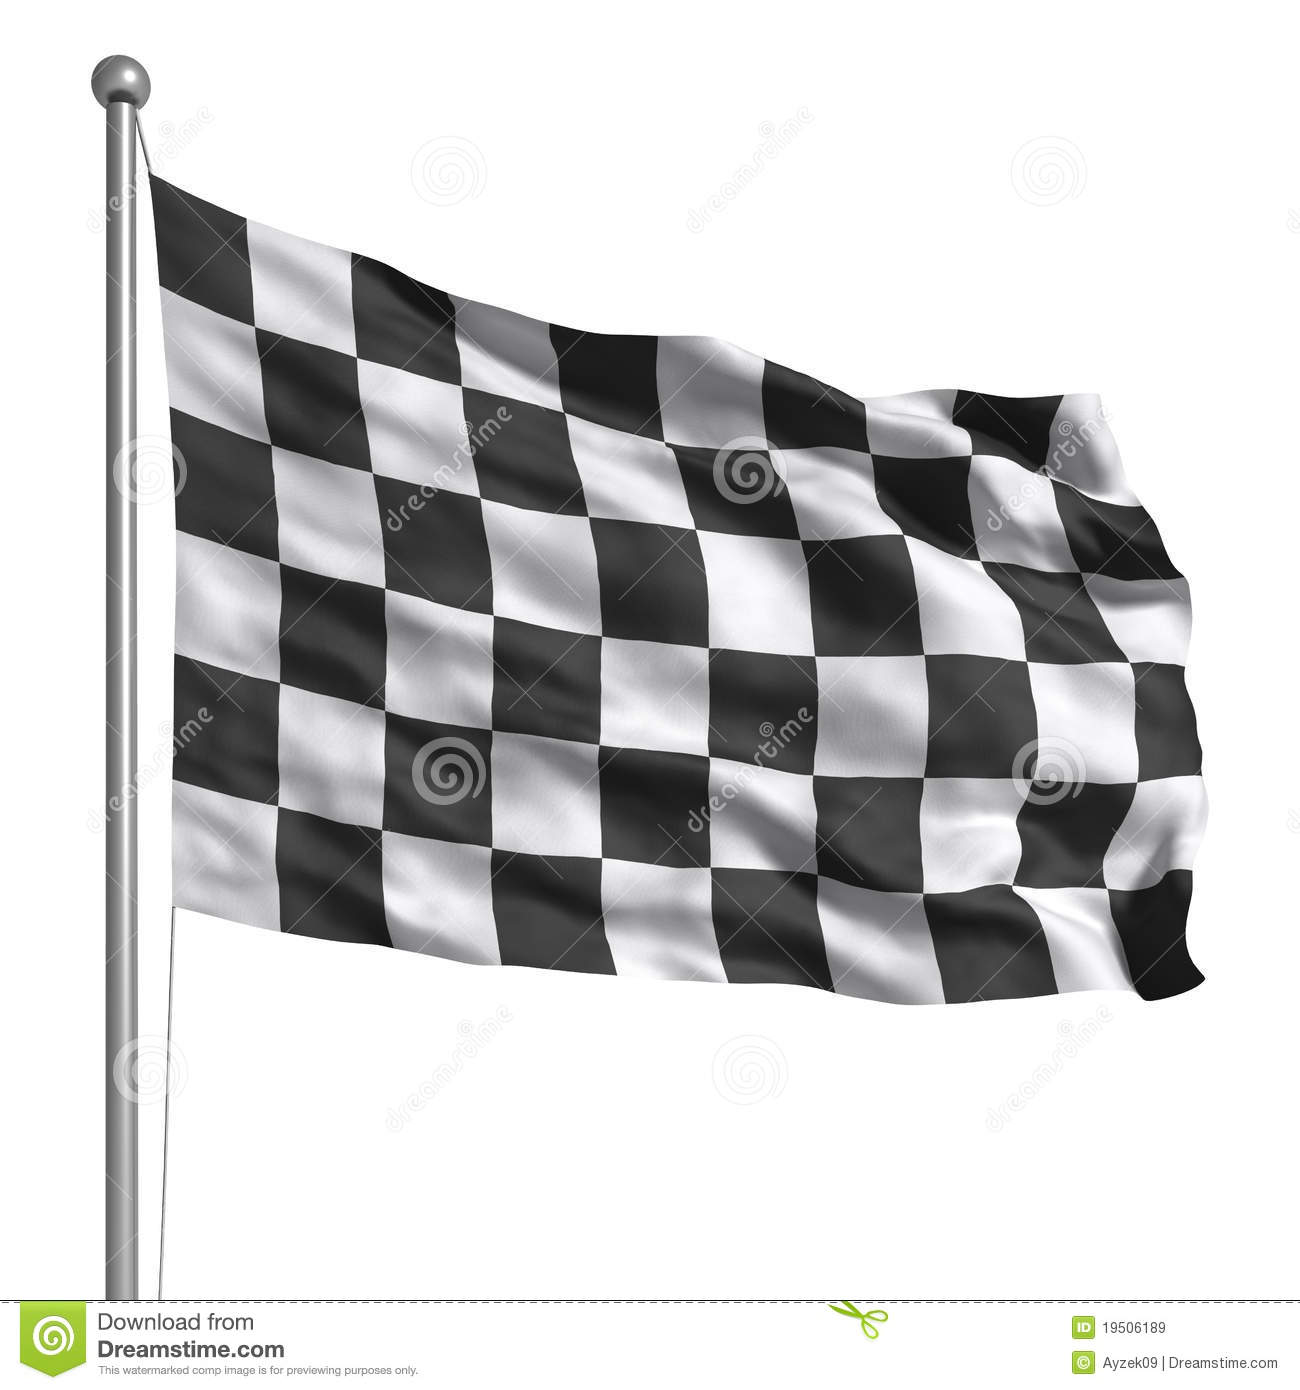 bce6f1b62e2 Checkered flag. Rendered with fabric texture (visible at 100%). Clipping  path included.